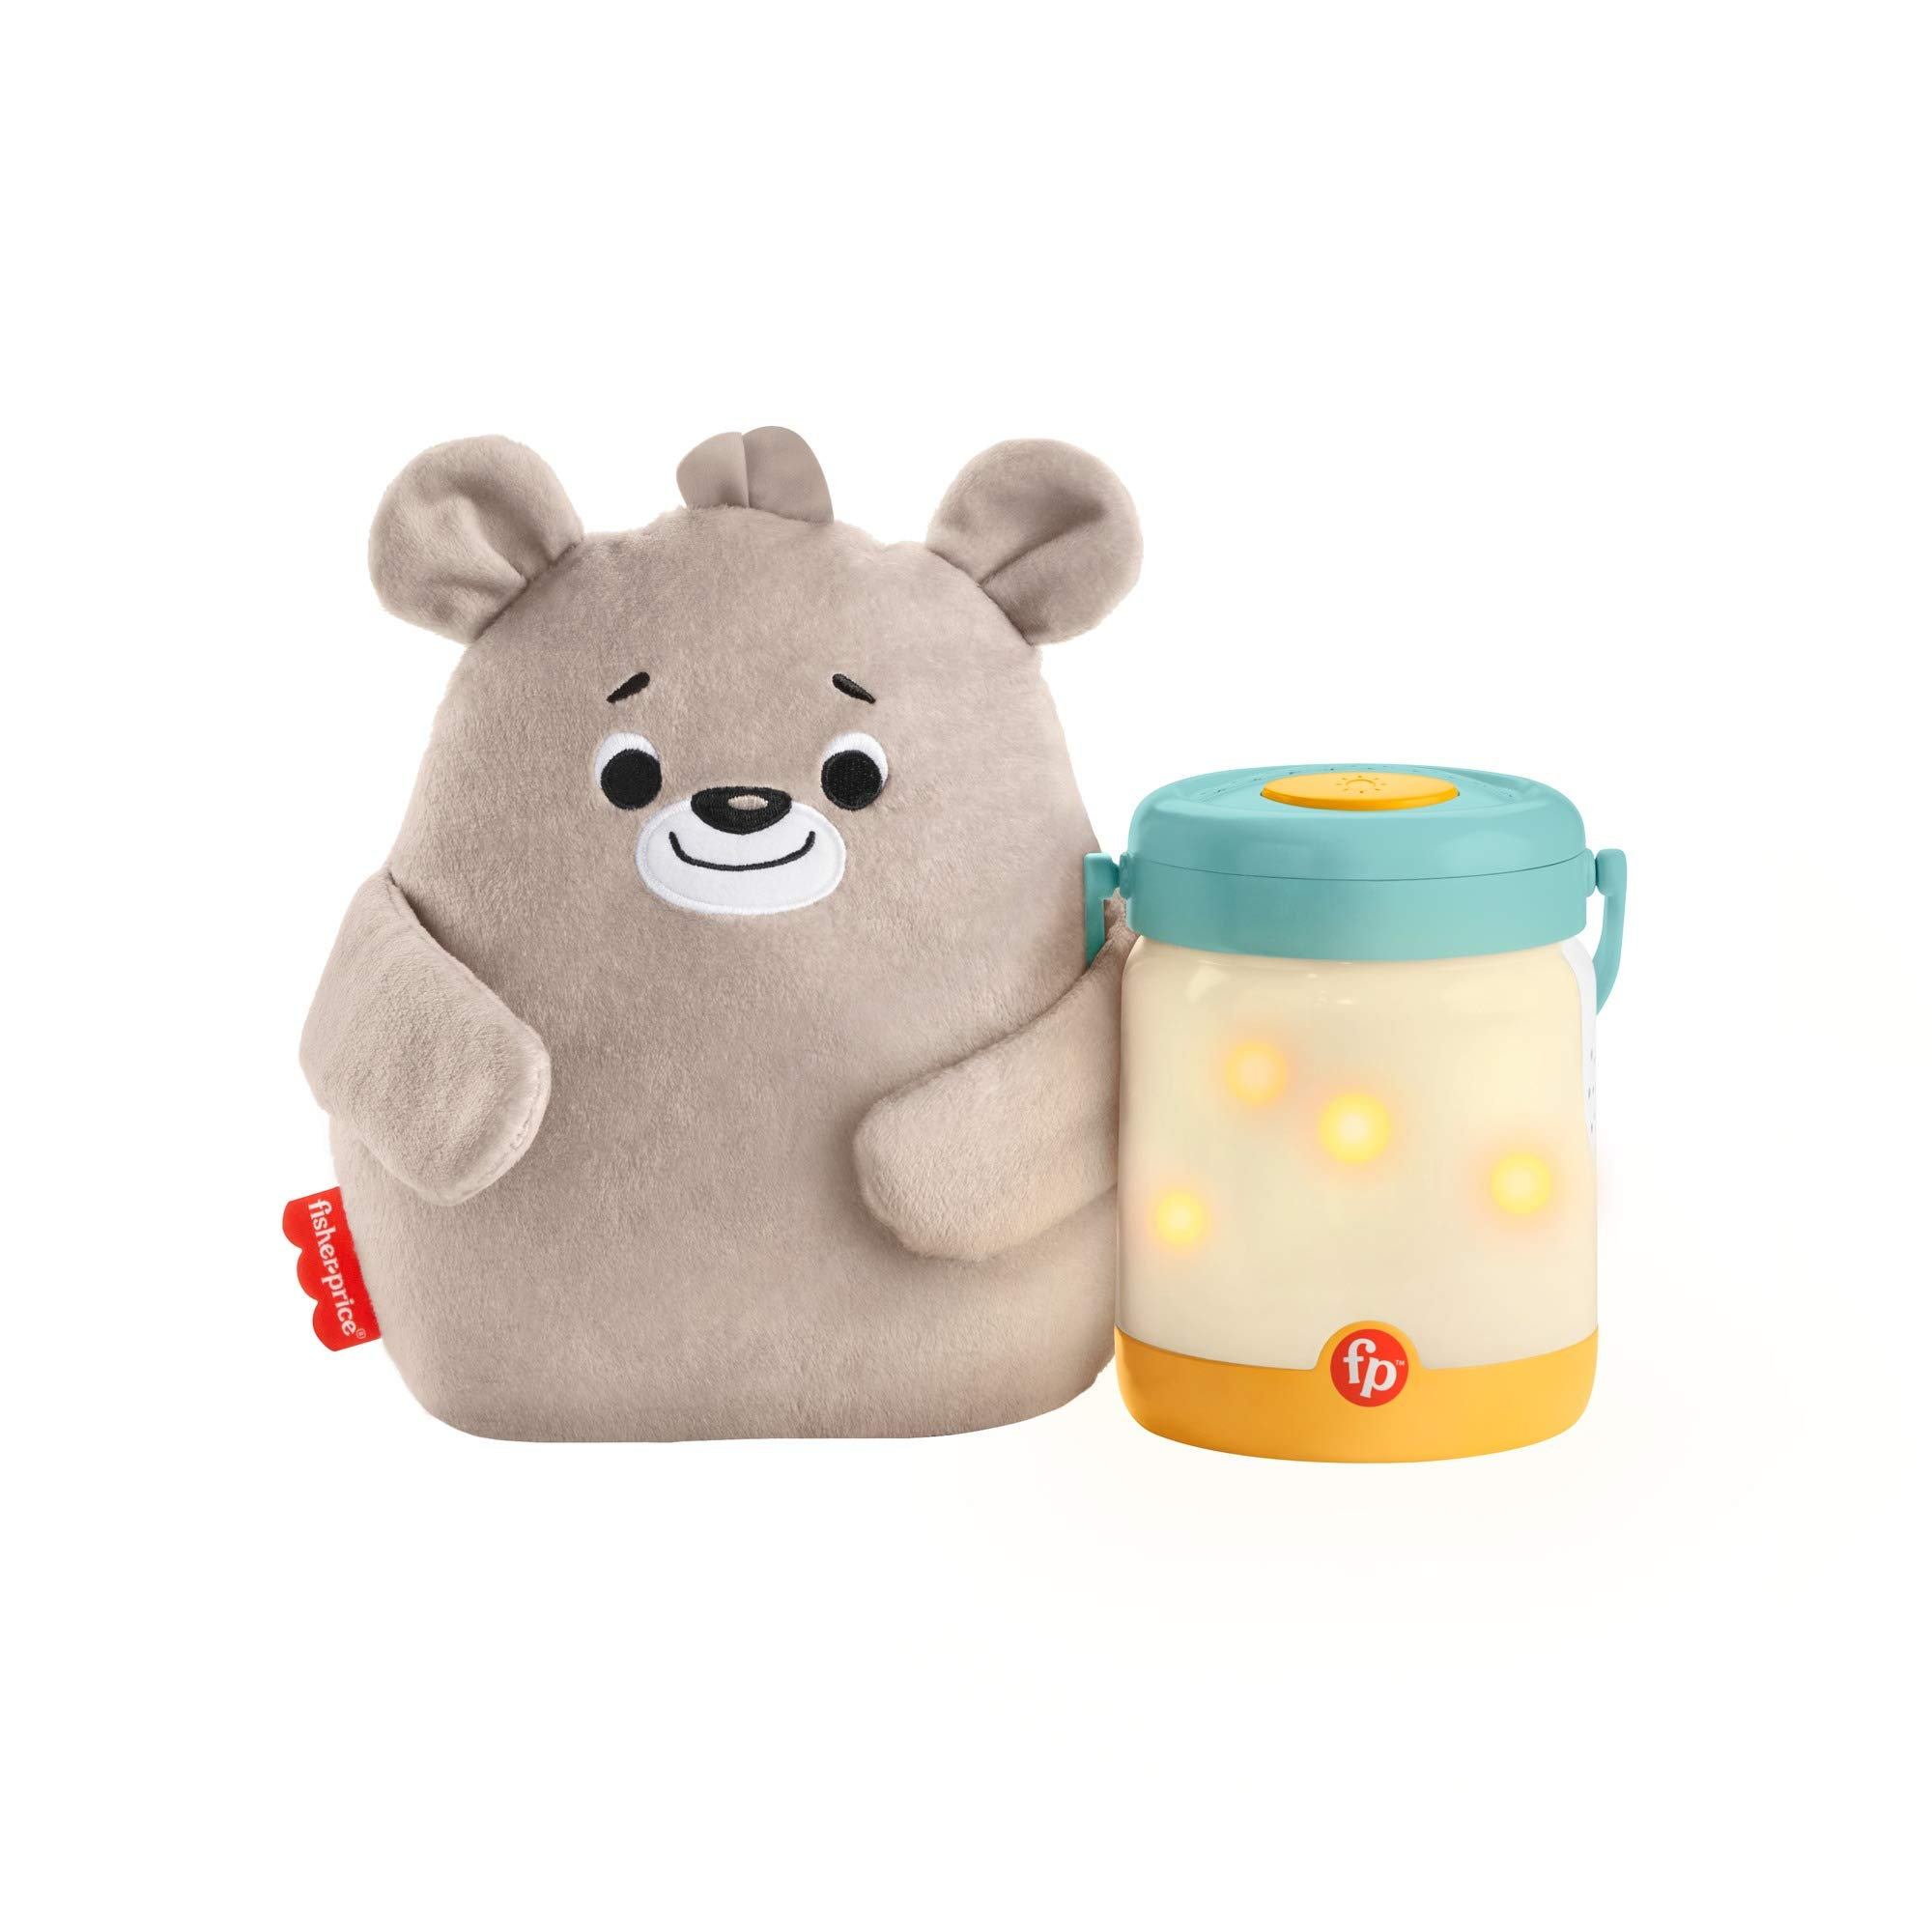 Fisher-Price Baby Bear Firefly Soother Lightup Nursery Sound Machine with TakeAlong Plush Toy for Babies Toddlers, Multicolor